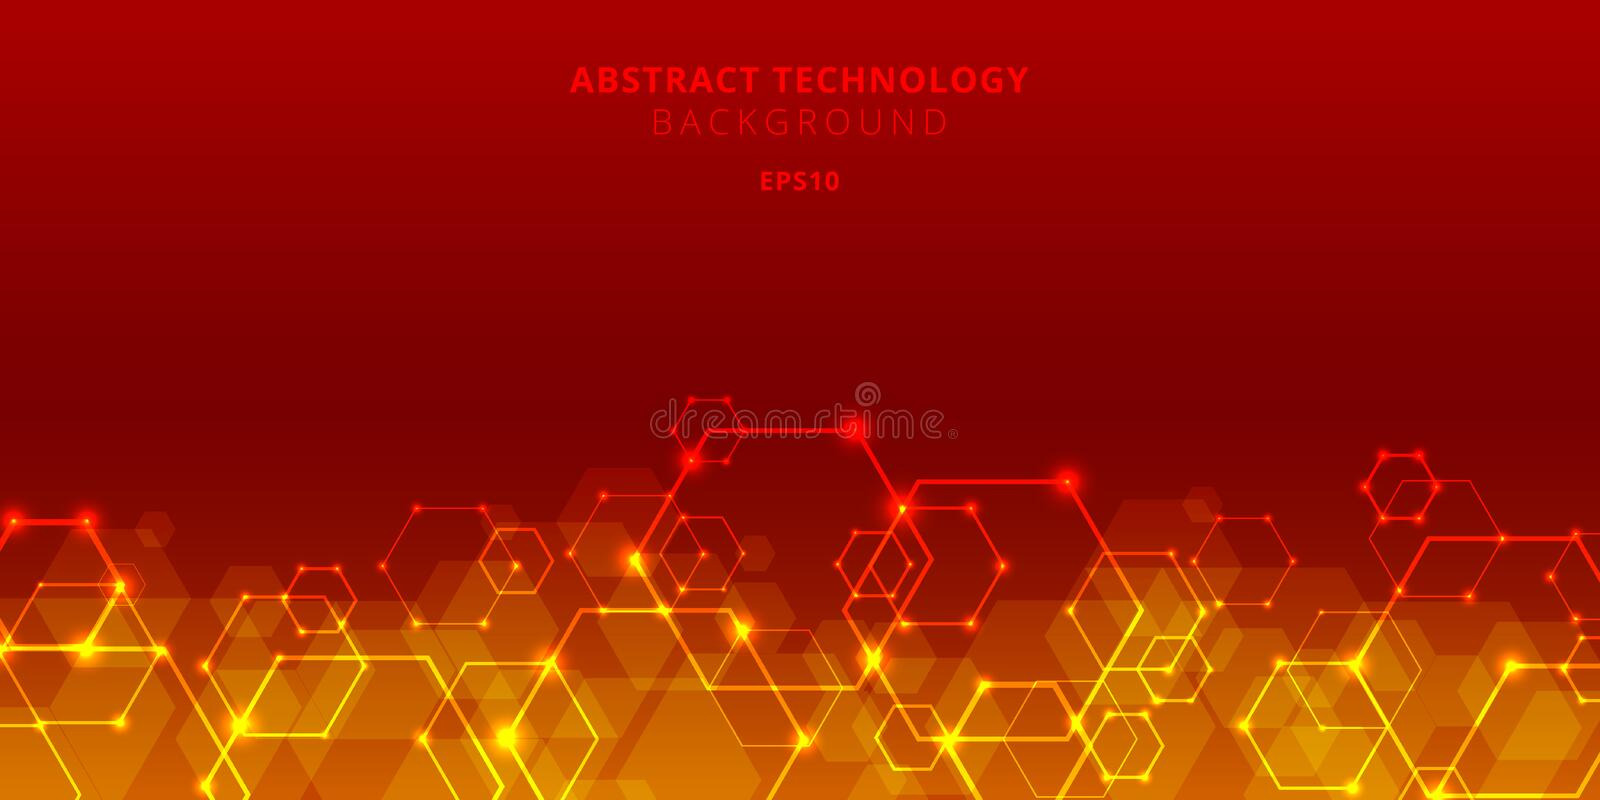 Abstract technology hexagons genetic and social network pattern on red background. Future geometric template elements hexagon with vector illustration